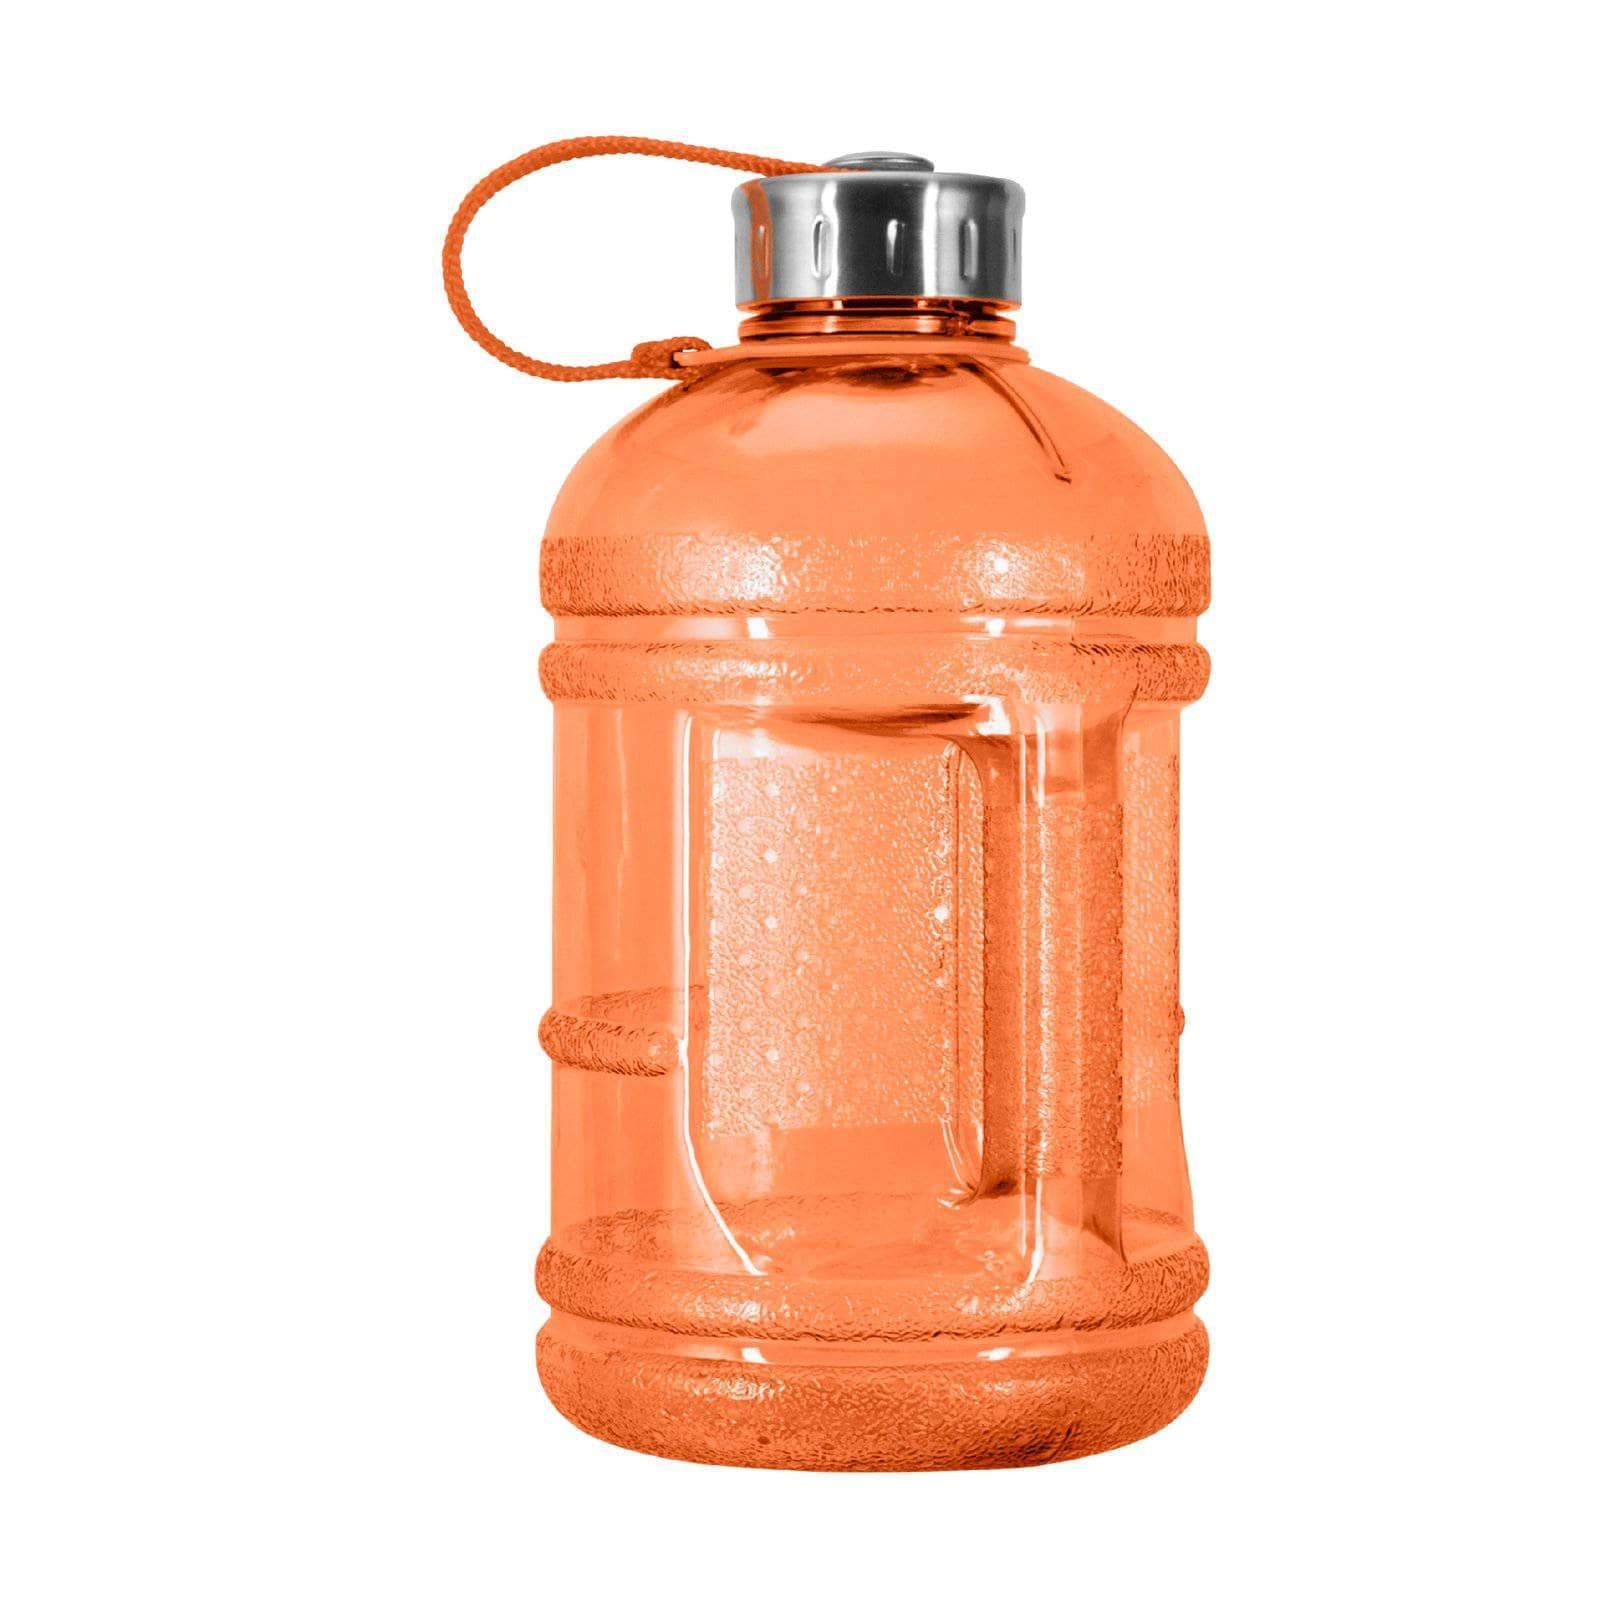 Geo Bottles Bottles Orange 1/2 Gallon BPA FREE Plastic Water Bottle w/ 48mm Steel Cap